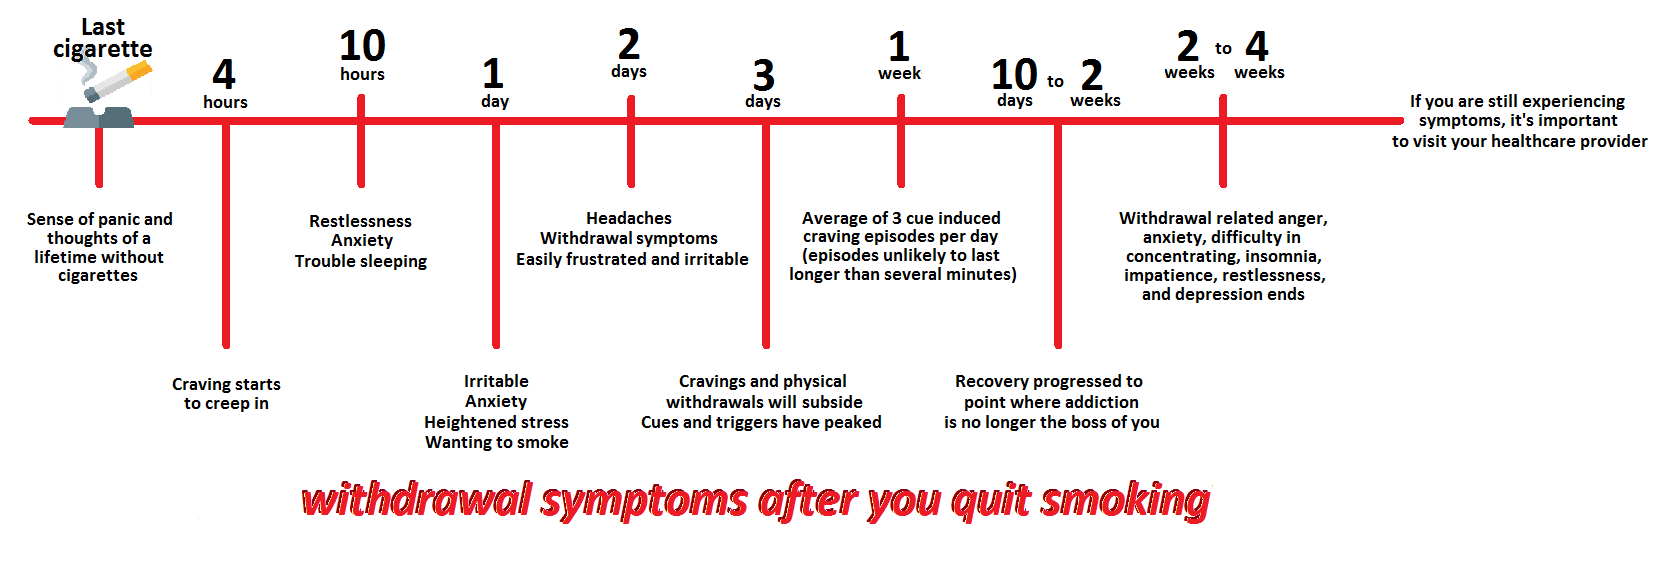 withdrawal symptoms after having your last cigarette include sense of panic and thoughts of a lifetime without cigarettes. At 4 hours after quitting, craving starts to creep in. At 10 hours after quitting, there is restlessness, anxiety, and trouble sleeping. 1 day after quitting, you can be irritable, anxious and heightened stress, and wanting to smoke. 2 days after quitting, you can have headaches and other withdrawal symptoms, and still be easily frustrated and irritable. 3 days after quitting, cravings and physical withdrawals will start to subside, and cues and triggers have peaked. 1 week after quitting, an average of 3 cue induced craving episodes will happen per day (episodes unlikely to last longer than several minutes). 10 days to 2 weeks after quitting, recovery would have progressed to point where addiction is no longer the boss of you. 2 to 4 weeks after quitting, withdrawal related anger, anxiety, difficulty in concentrating, insomnia, impatience, restlessness, and depression would have ended. If you are still experiencing these symptoms, it's important to visit your healthcare provider